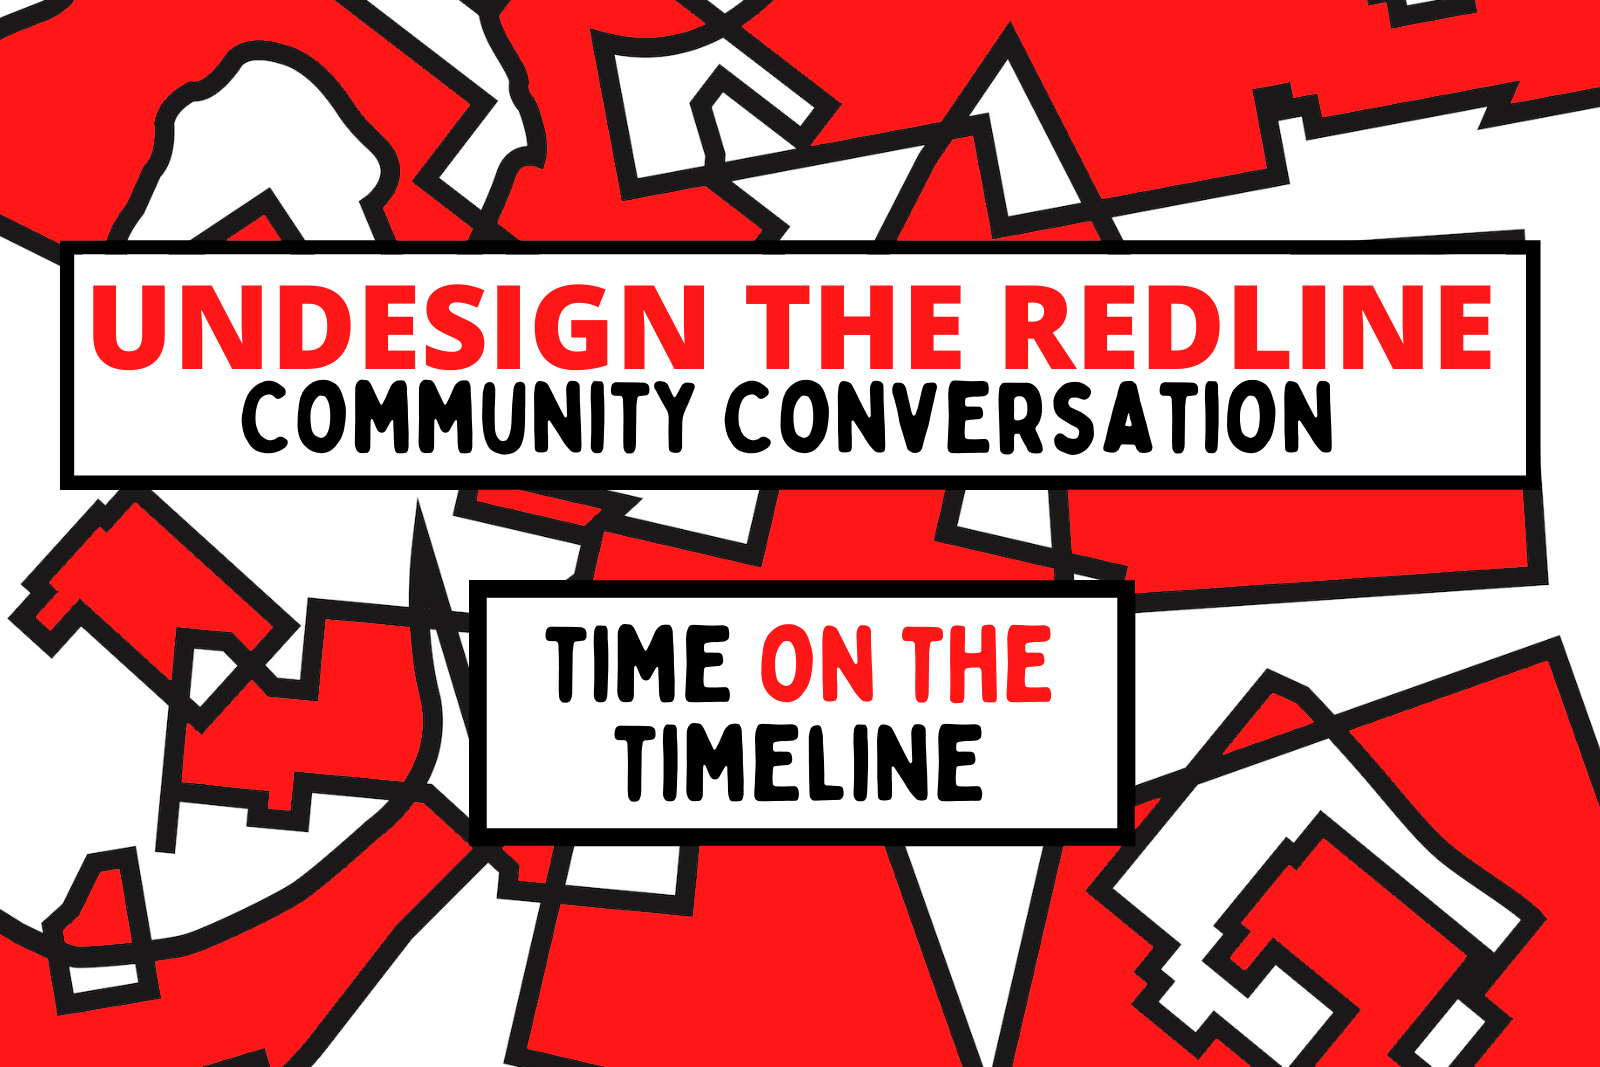 Undesign the Redline Time on the Timeline against a red and white patterned background resembling a 22 Redline22 map